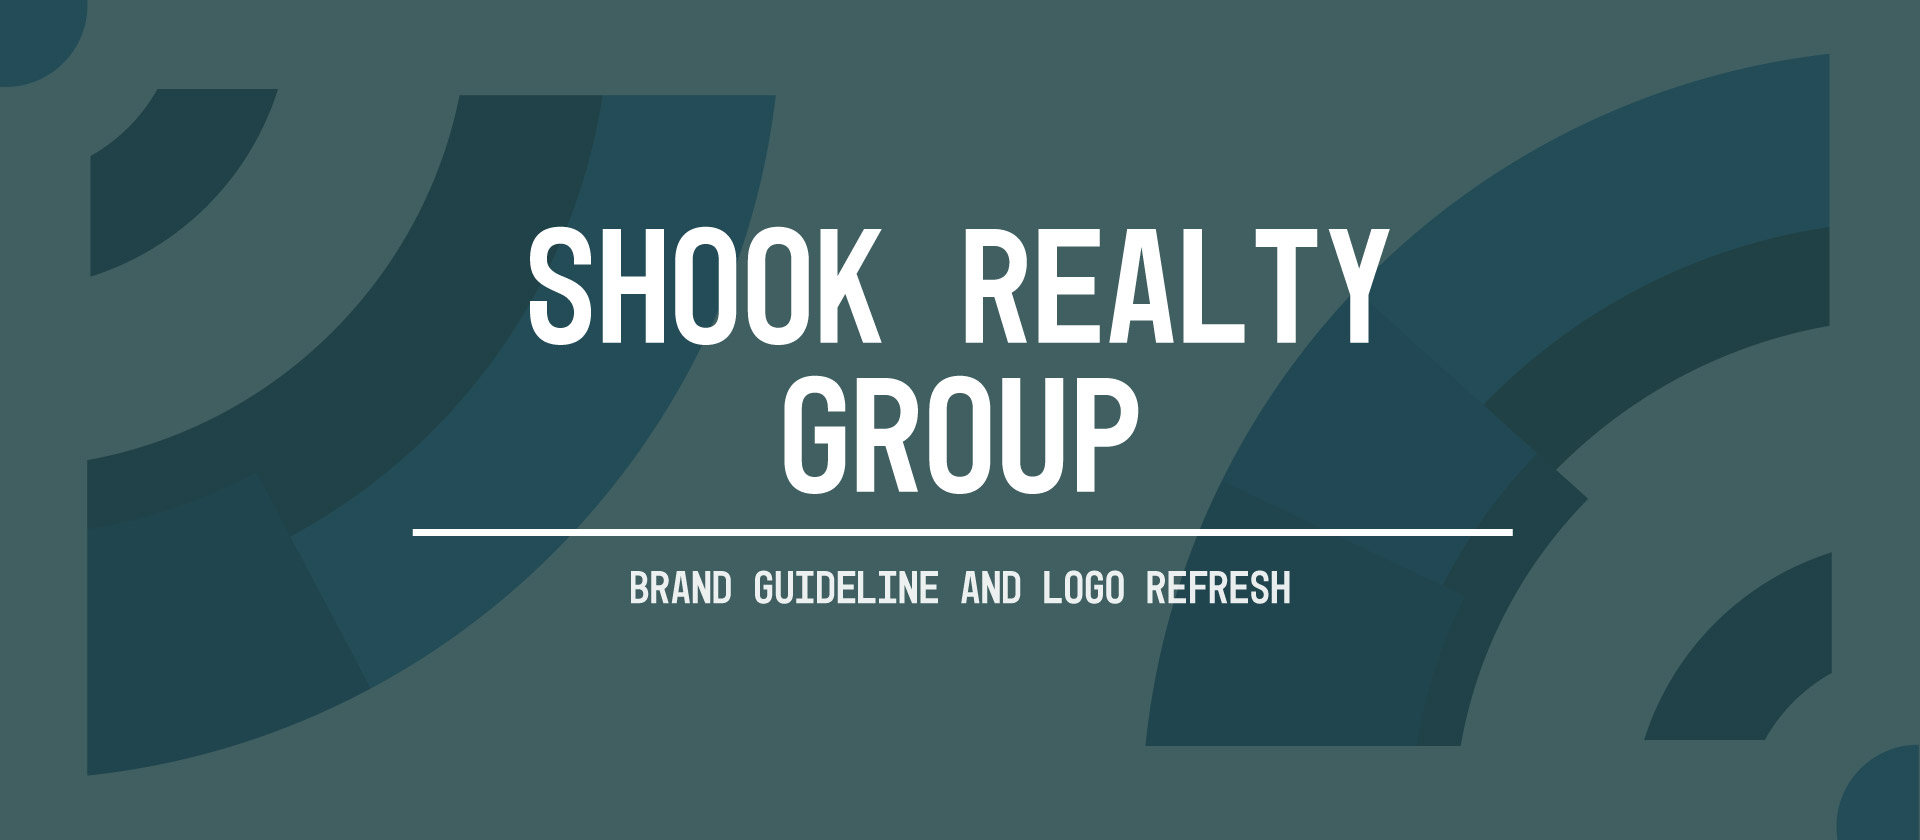 shook Header Brand Guideline and Logo Refresh: Shook Realty Group